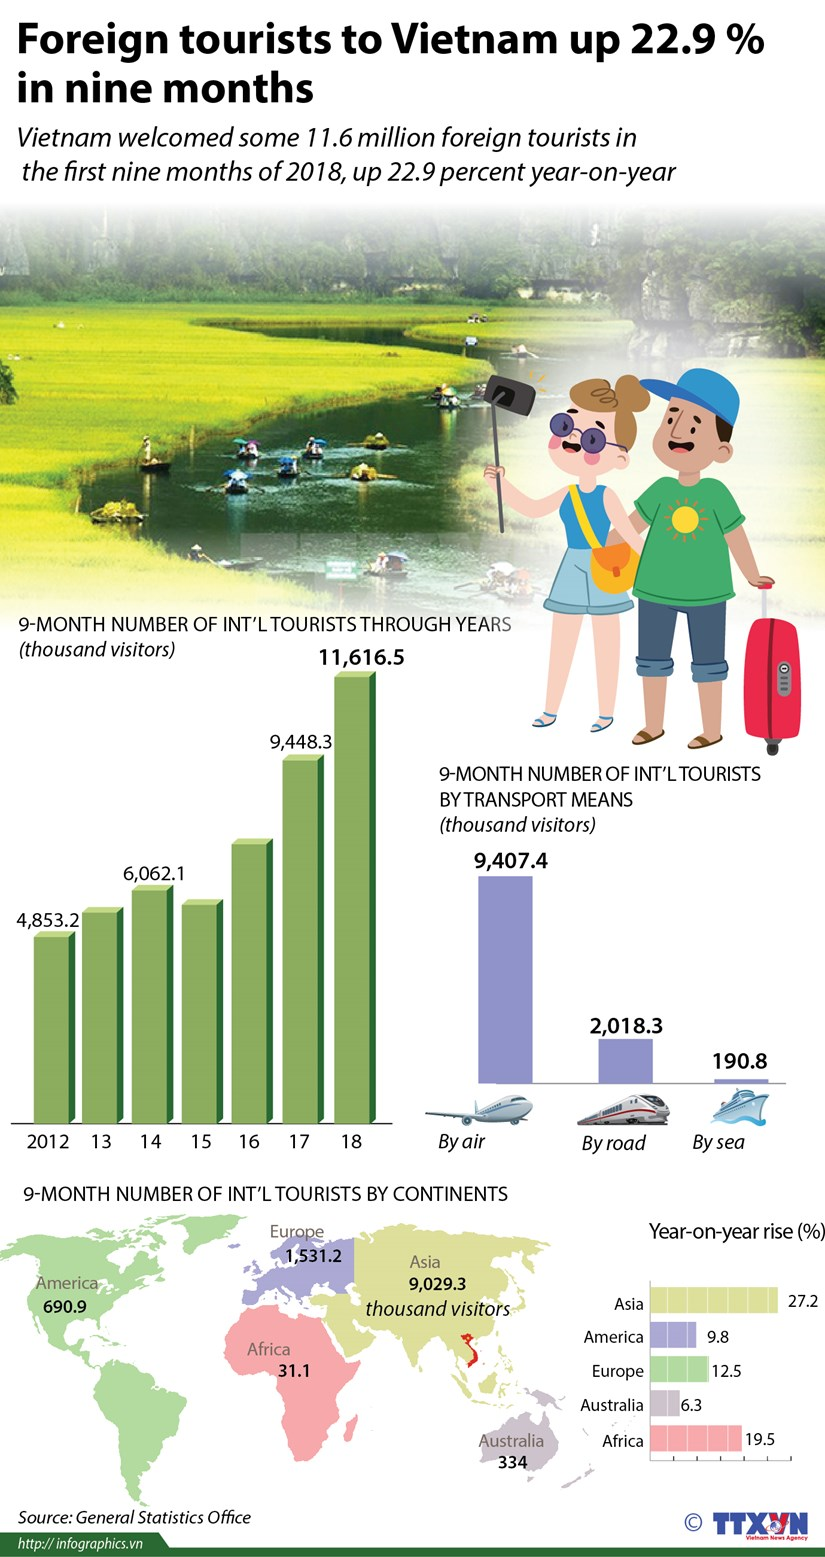 Foreign tourists to Vietnam up 22.9 percent in nine months hinh anh 1